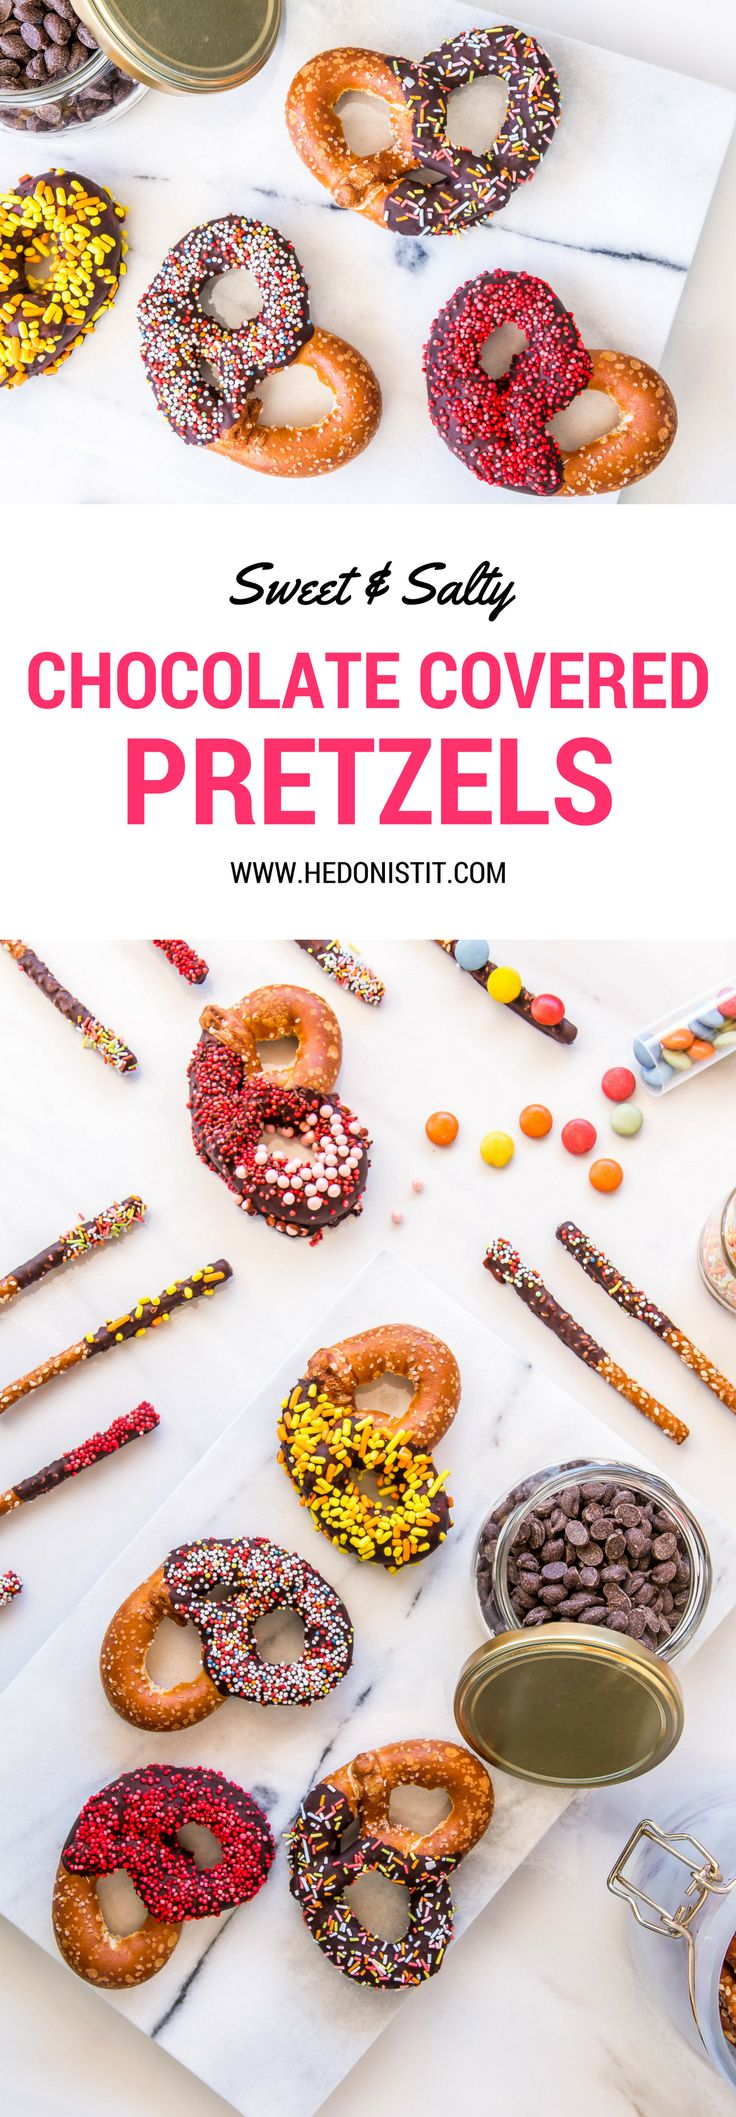 The best party snack and holiday gift! Chocolate covered pretzels recipe - so easy to make at home!